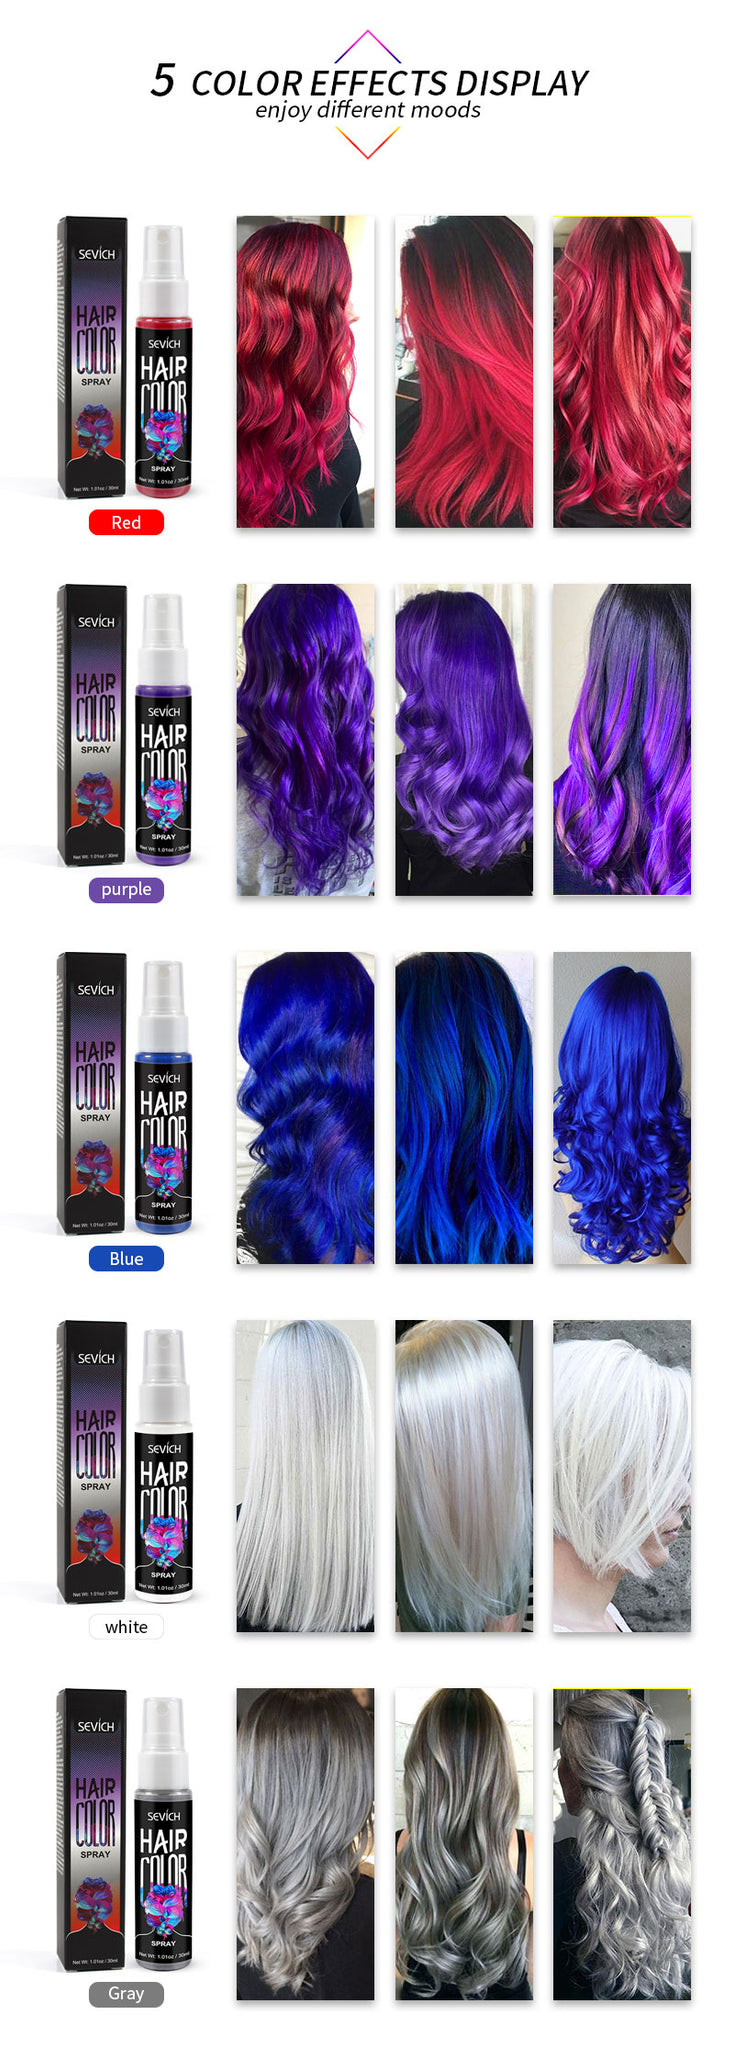 Hair Color Spray Instant  Styling Product One-time Hair Dry Color Fashion Beauty Makeup